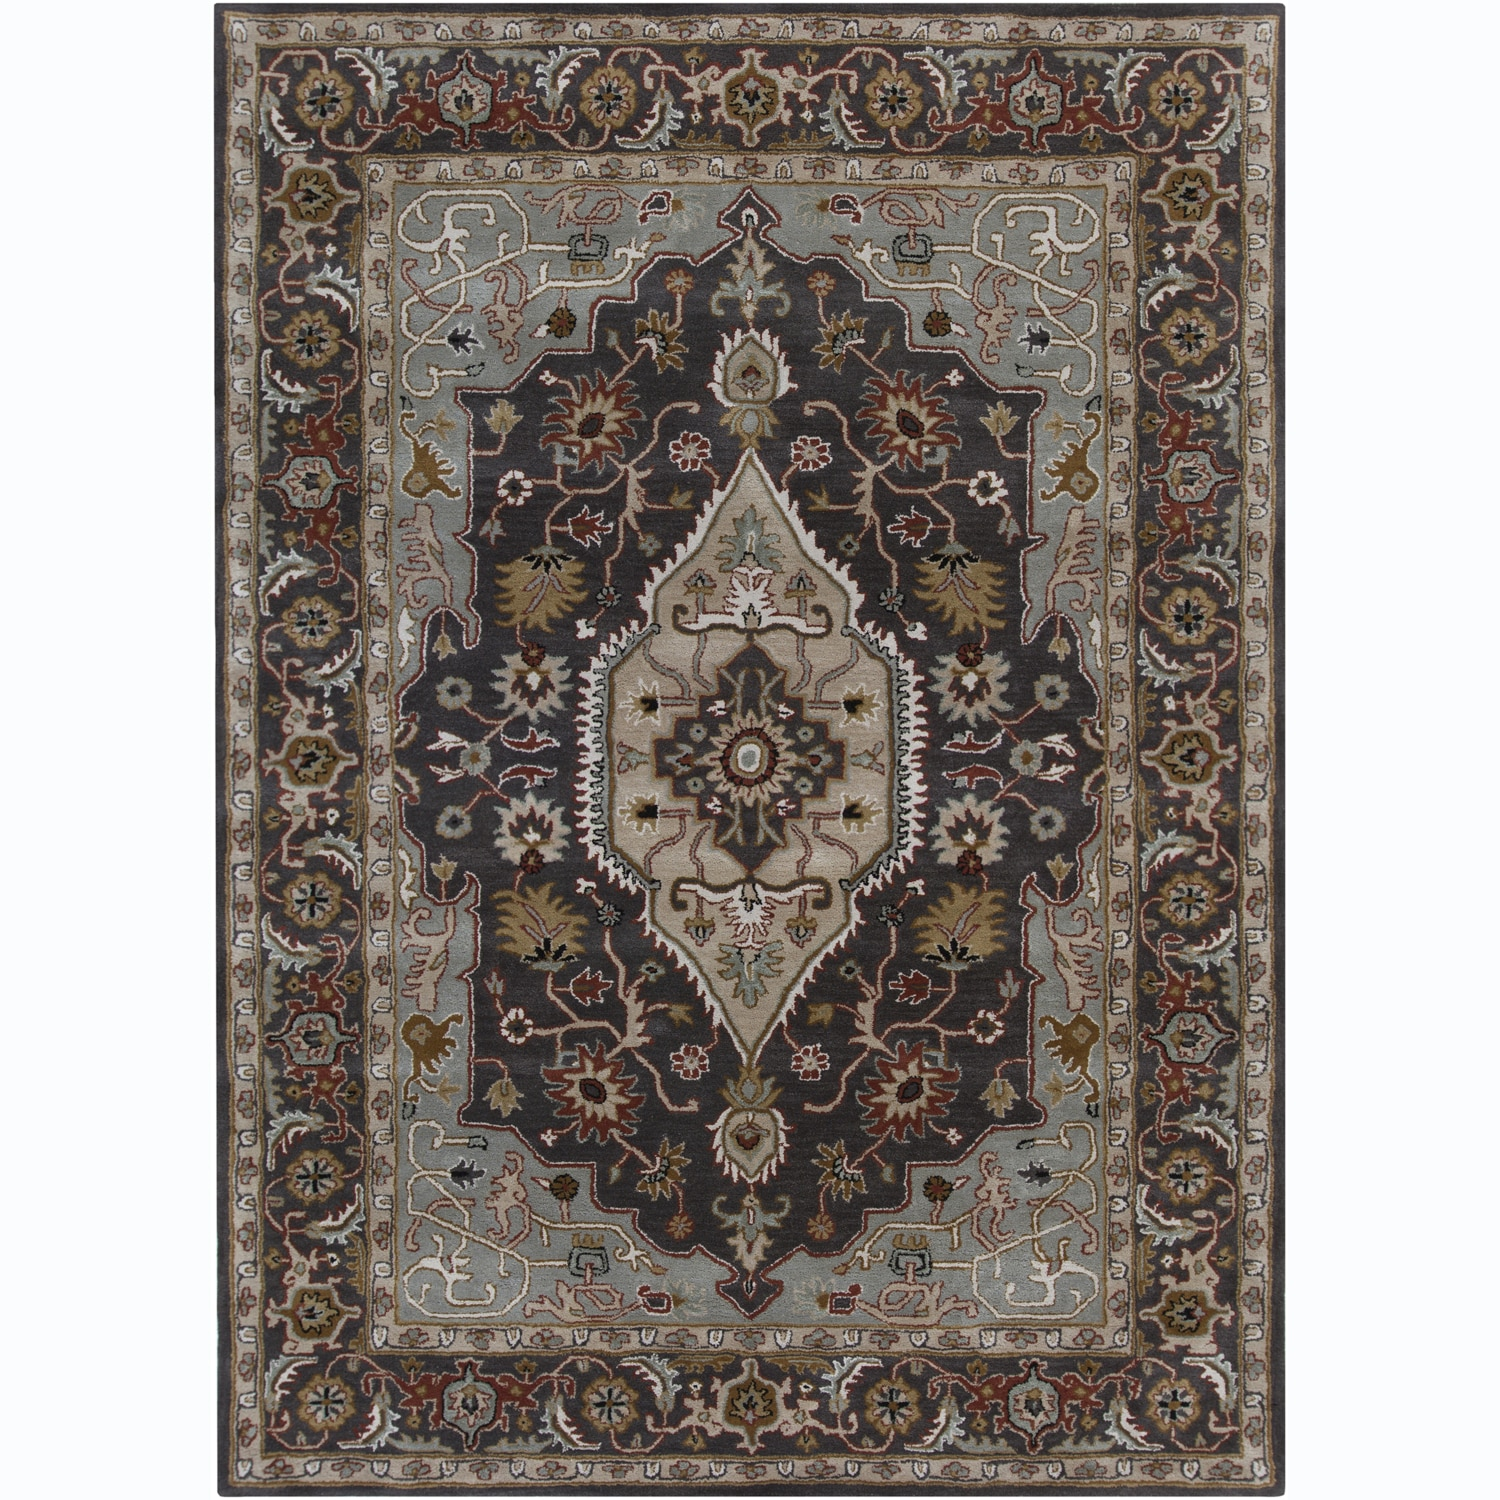 Rugs, Discount Area Rugs on Sale | motingsyti.tk has been visited by 10K+ users in the past month.